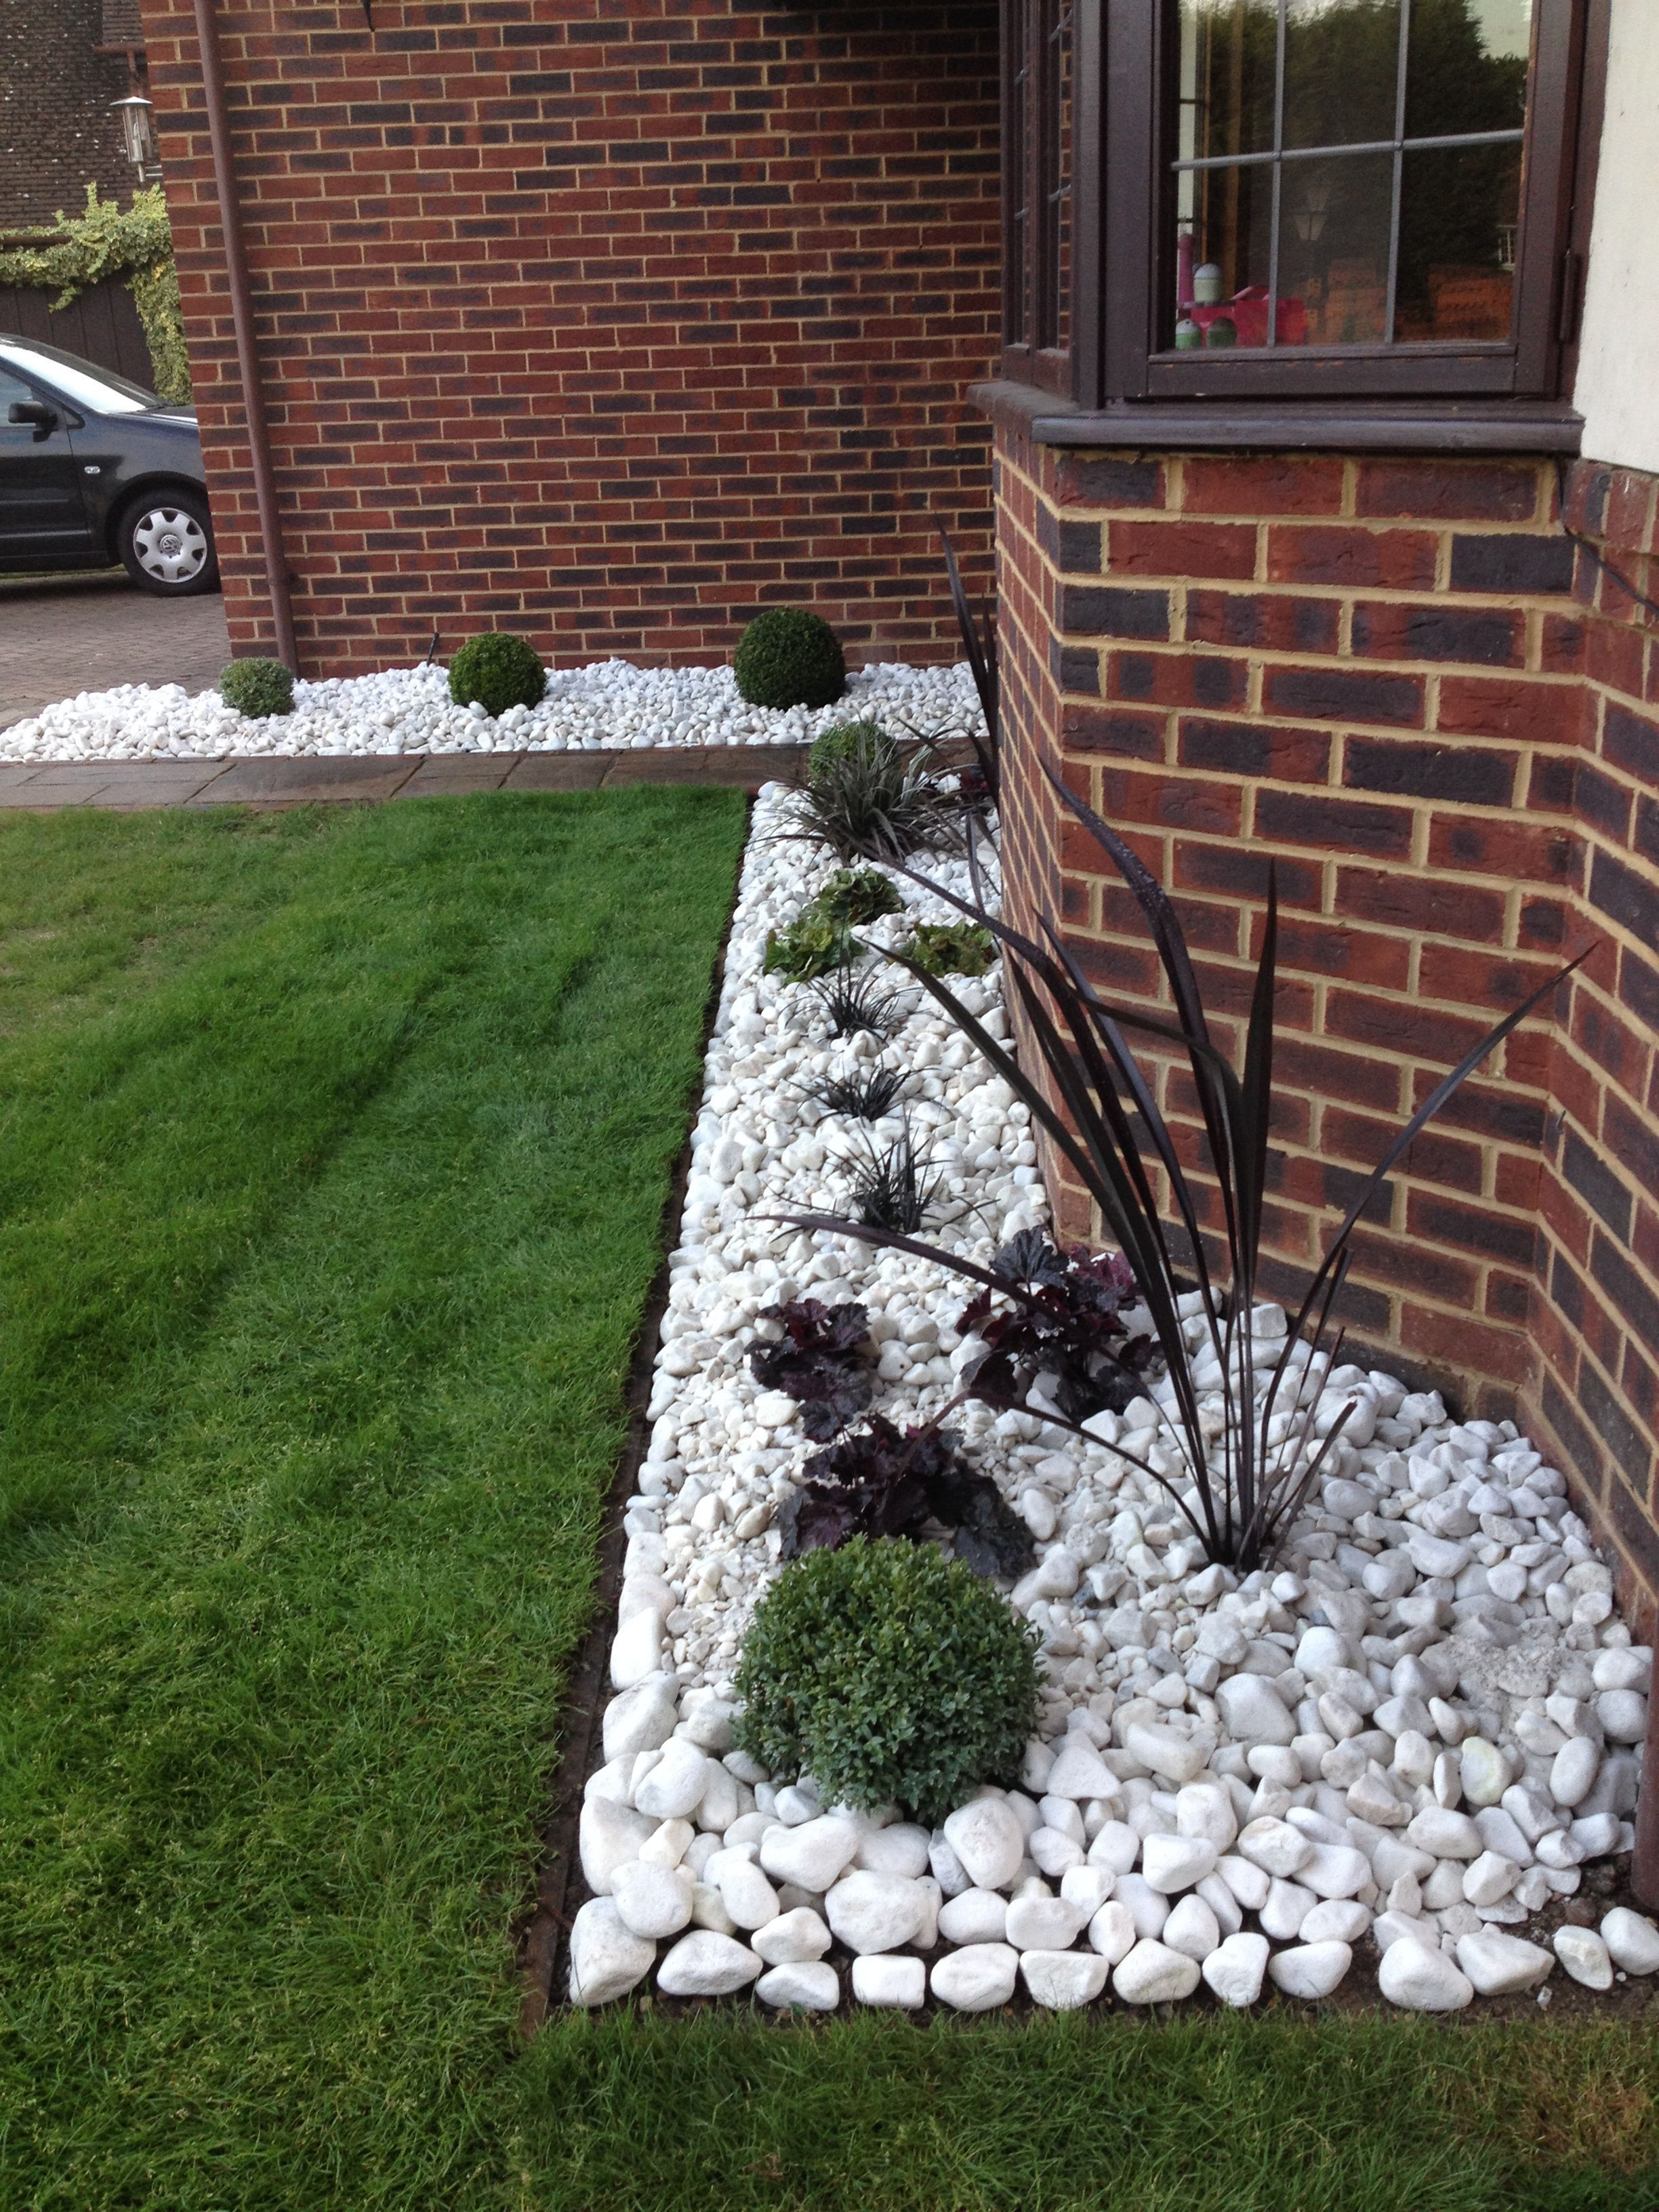 45 Gorgeous Small Garden Design With Low Cost Monthly Maintenance Small Front Gardens Front Garden Design Small Garden Design